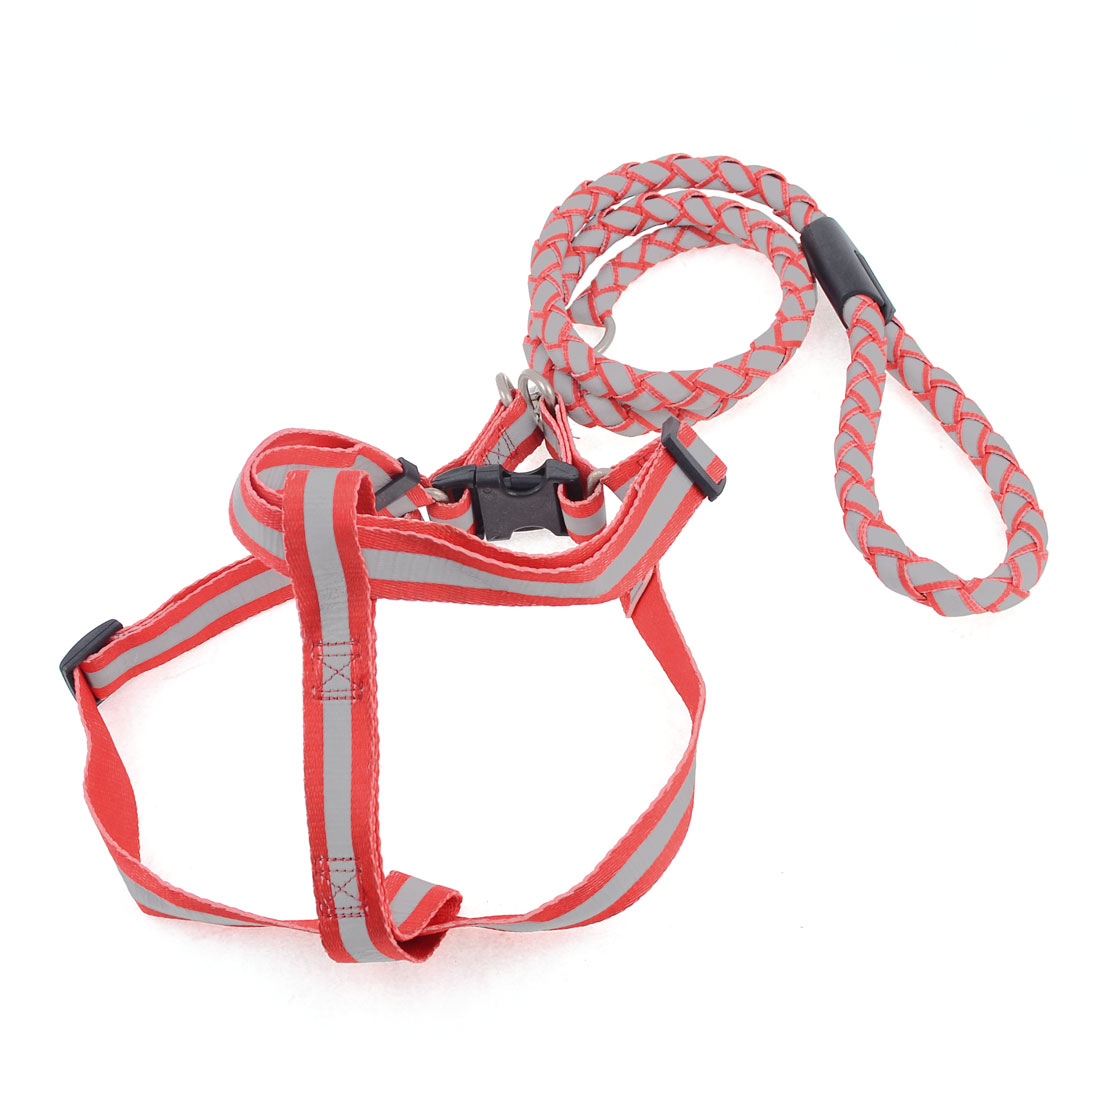 118cm Length Nylon Rope Braided Reflective Pet Dog Harness Leash Red Gray